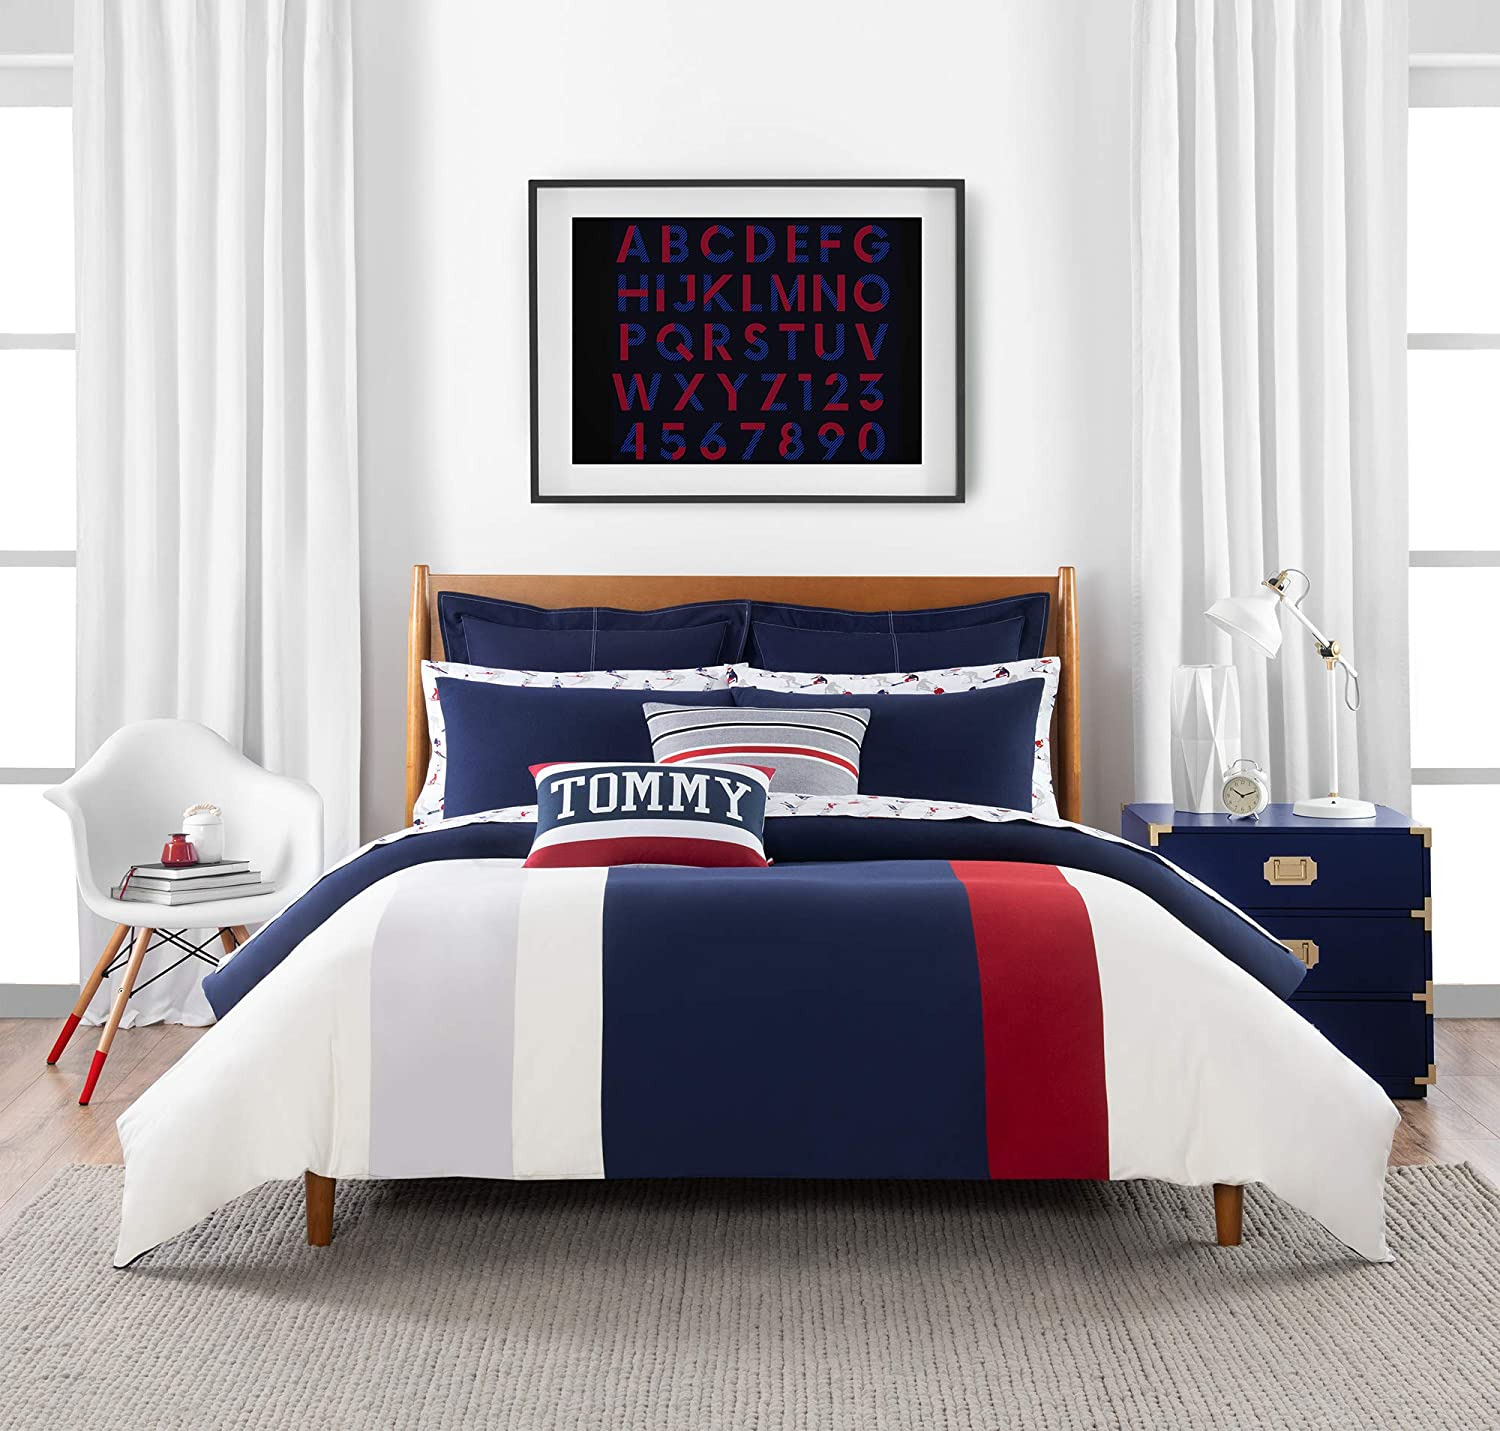 Tommy Hilfiger Clash of '85 Stripe Bedding Collection Comforter Set, Twin, Ivory/Navy/Red